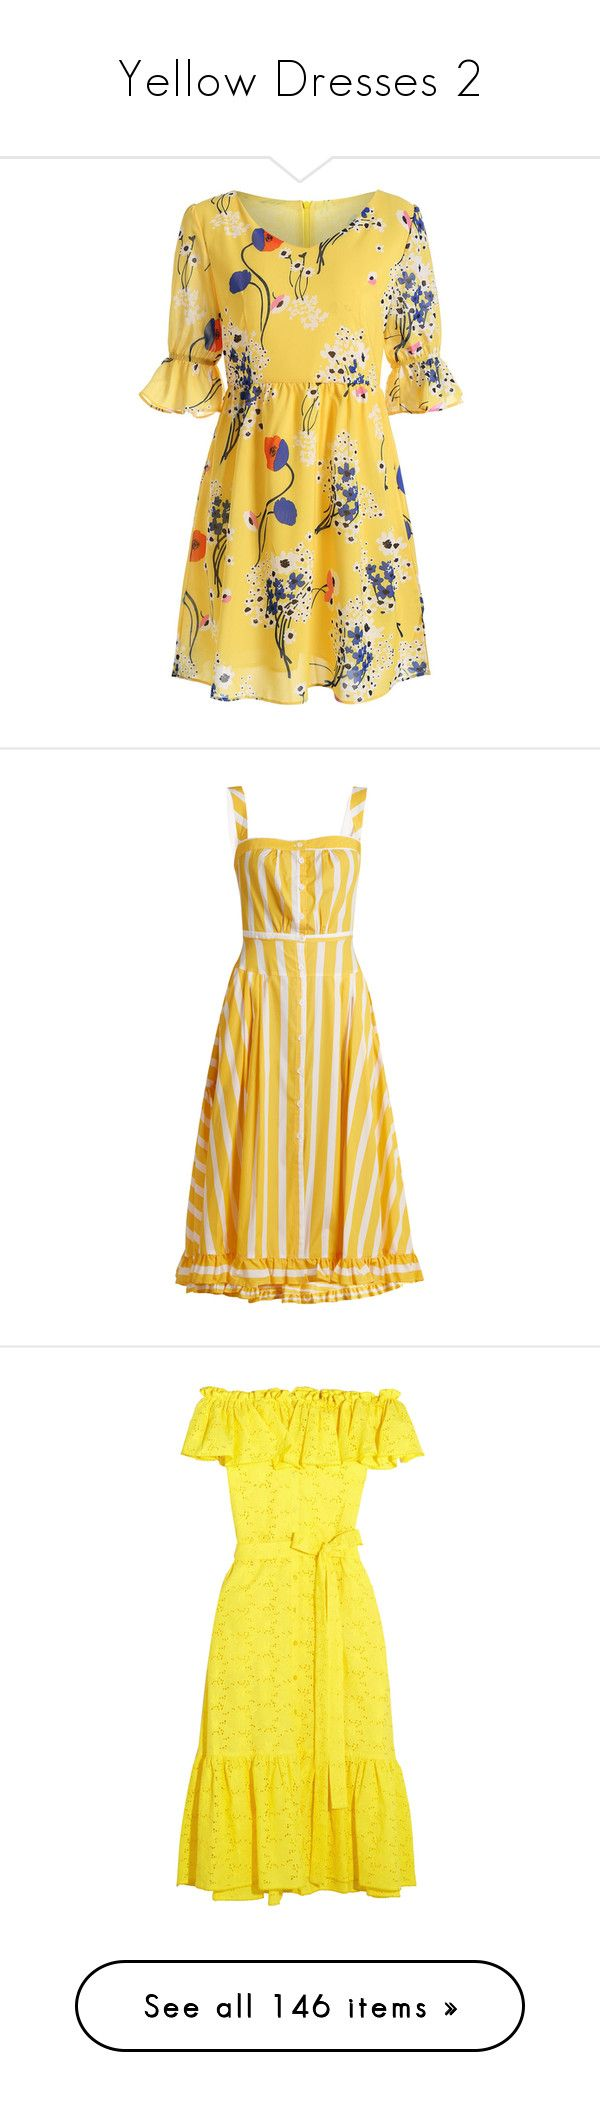 """""""Yellow Dresses 2"""" by impossiblehopes ❤ liked on Polyvore featuring dresses, v neck mini dress, yellow mini dress, flower print dress, floral dresses, v-neck dresses, yellow multi, sunflower yellow dress, woven dress and frill hem dress"""